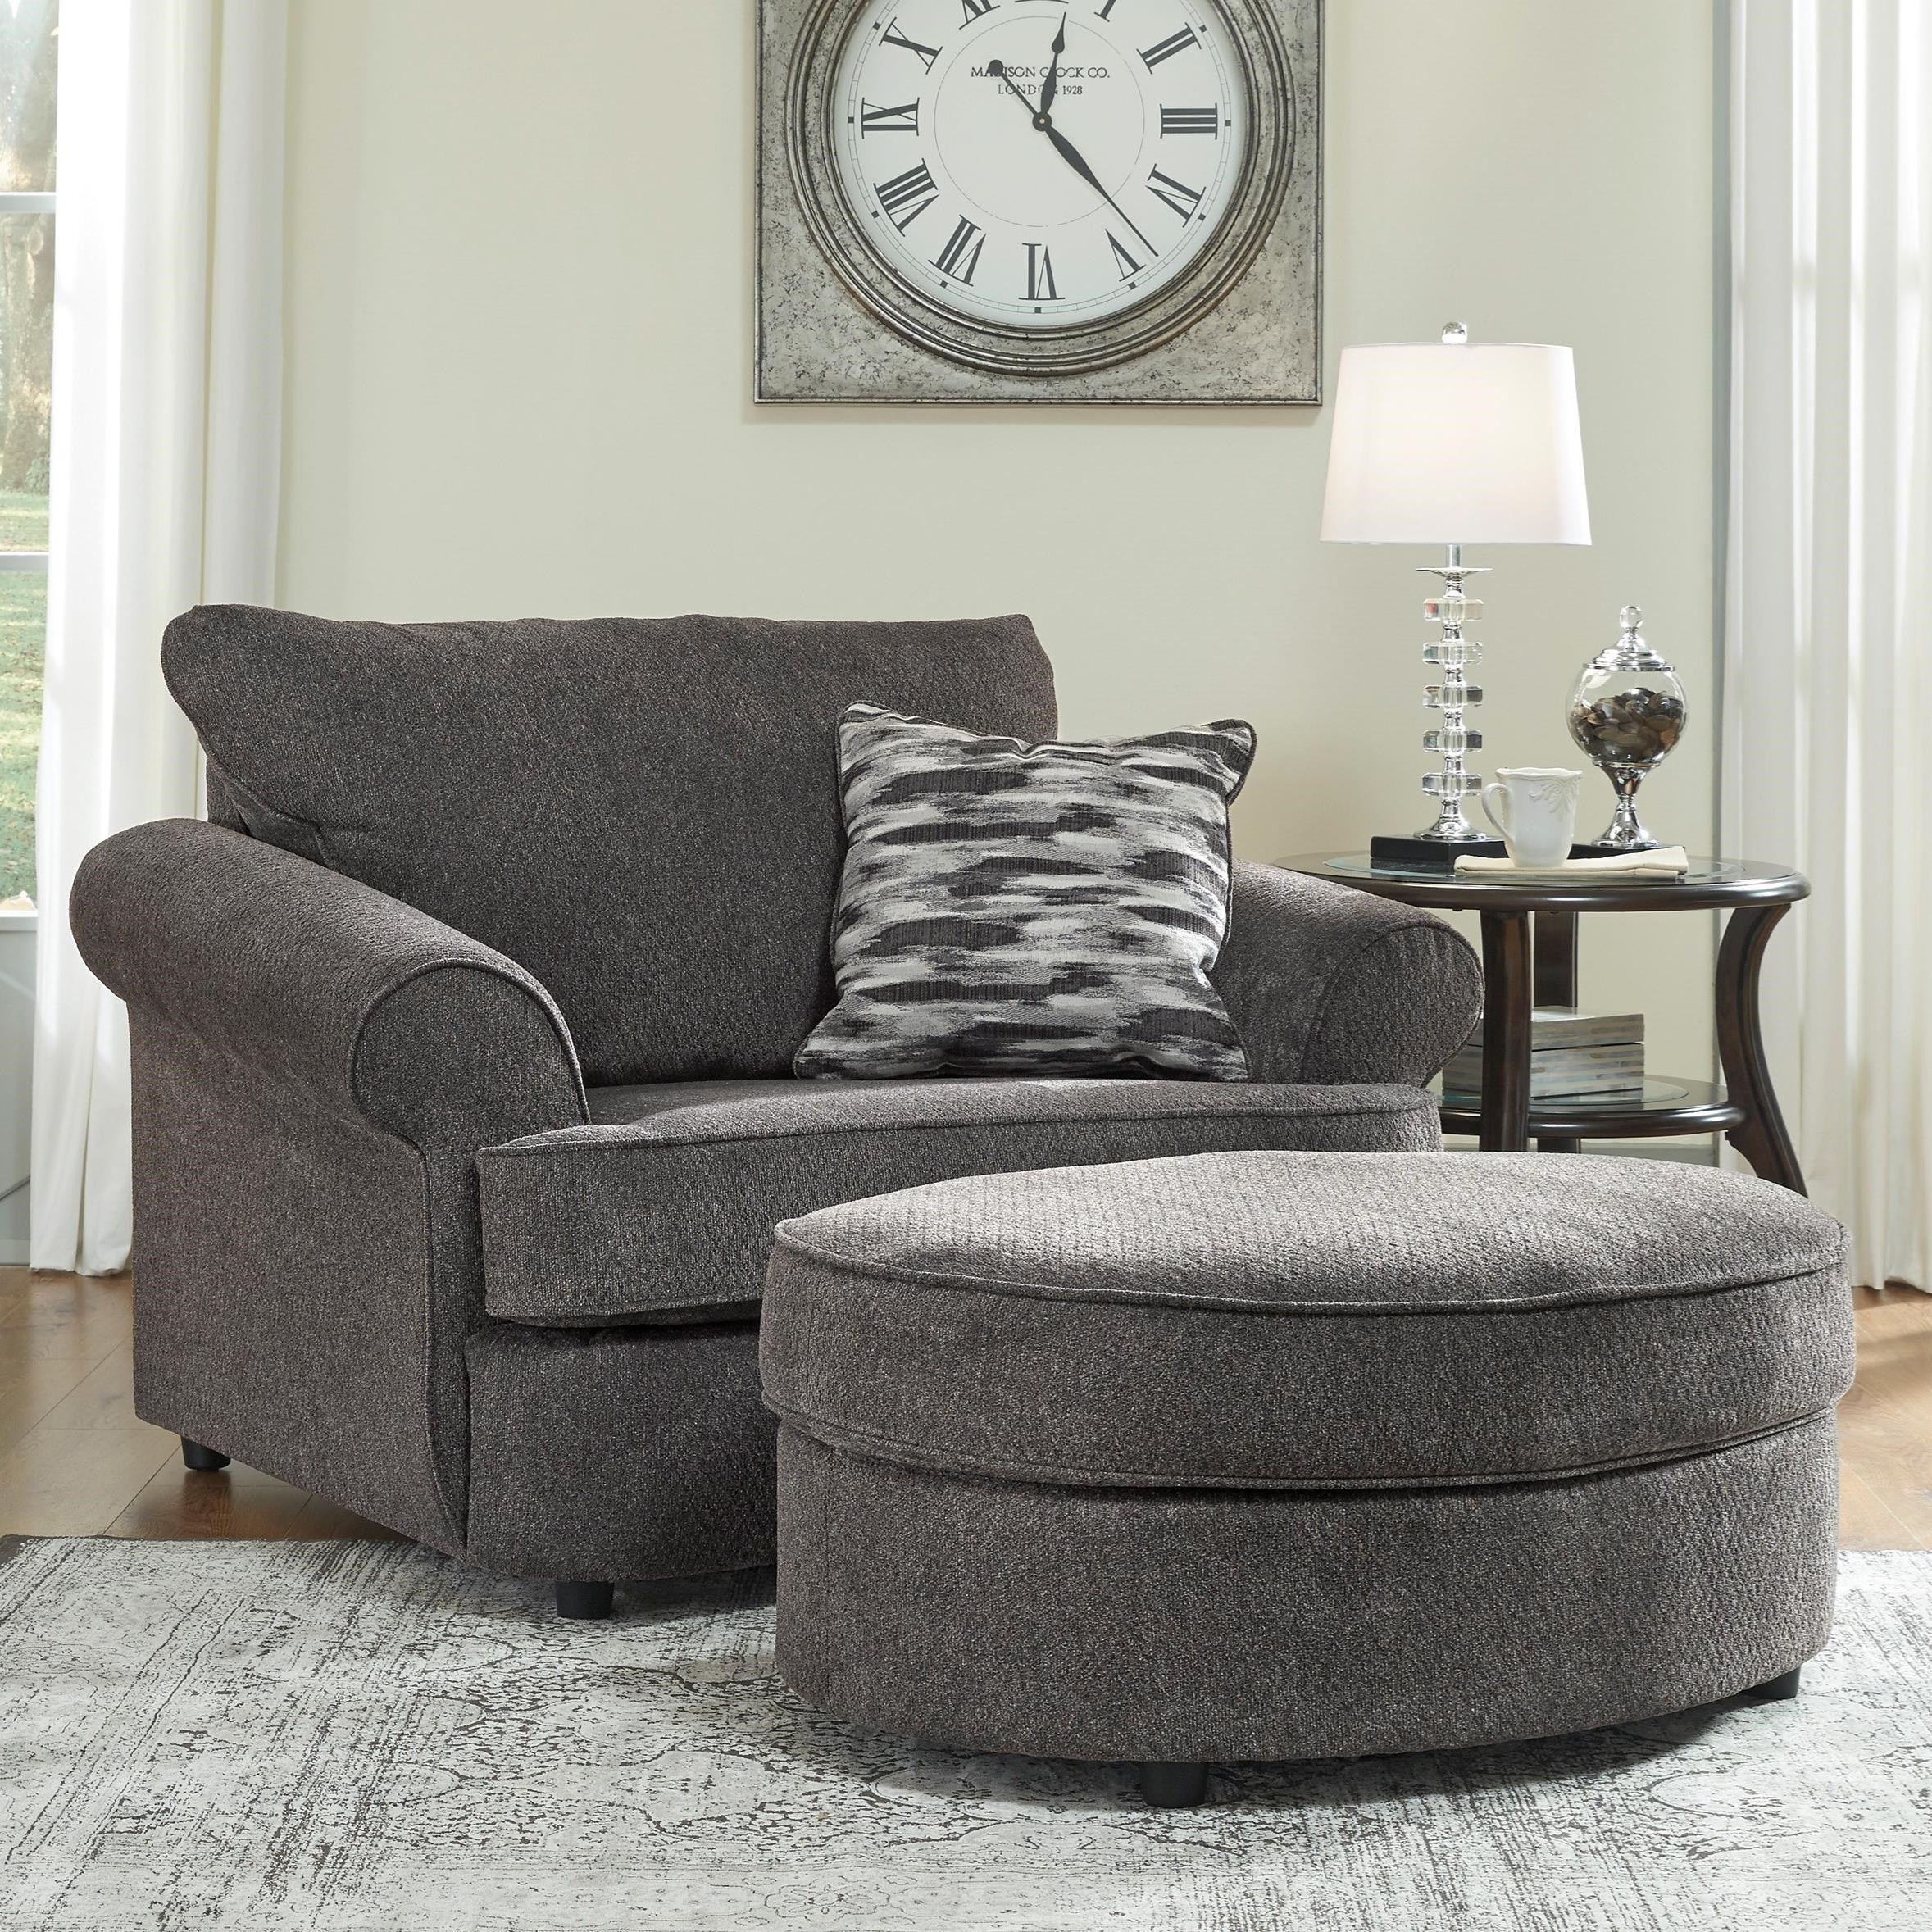 Gentil Chair And A Half U0026 Ottoman